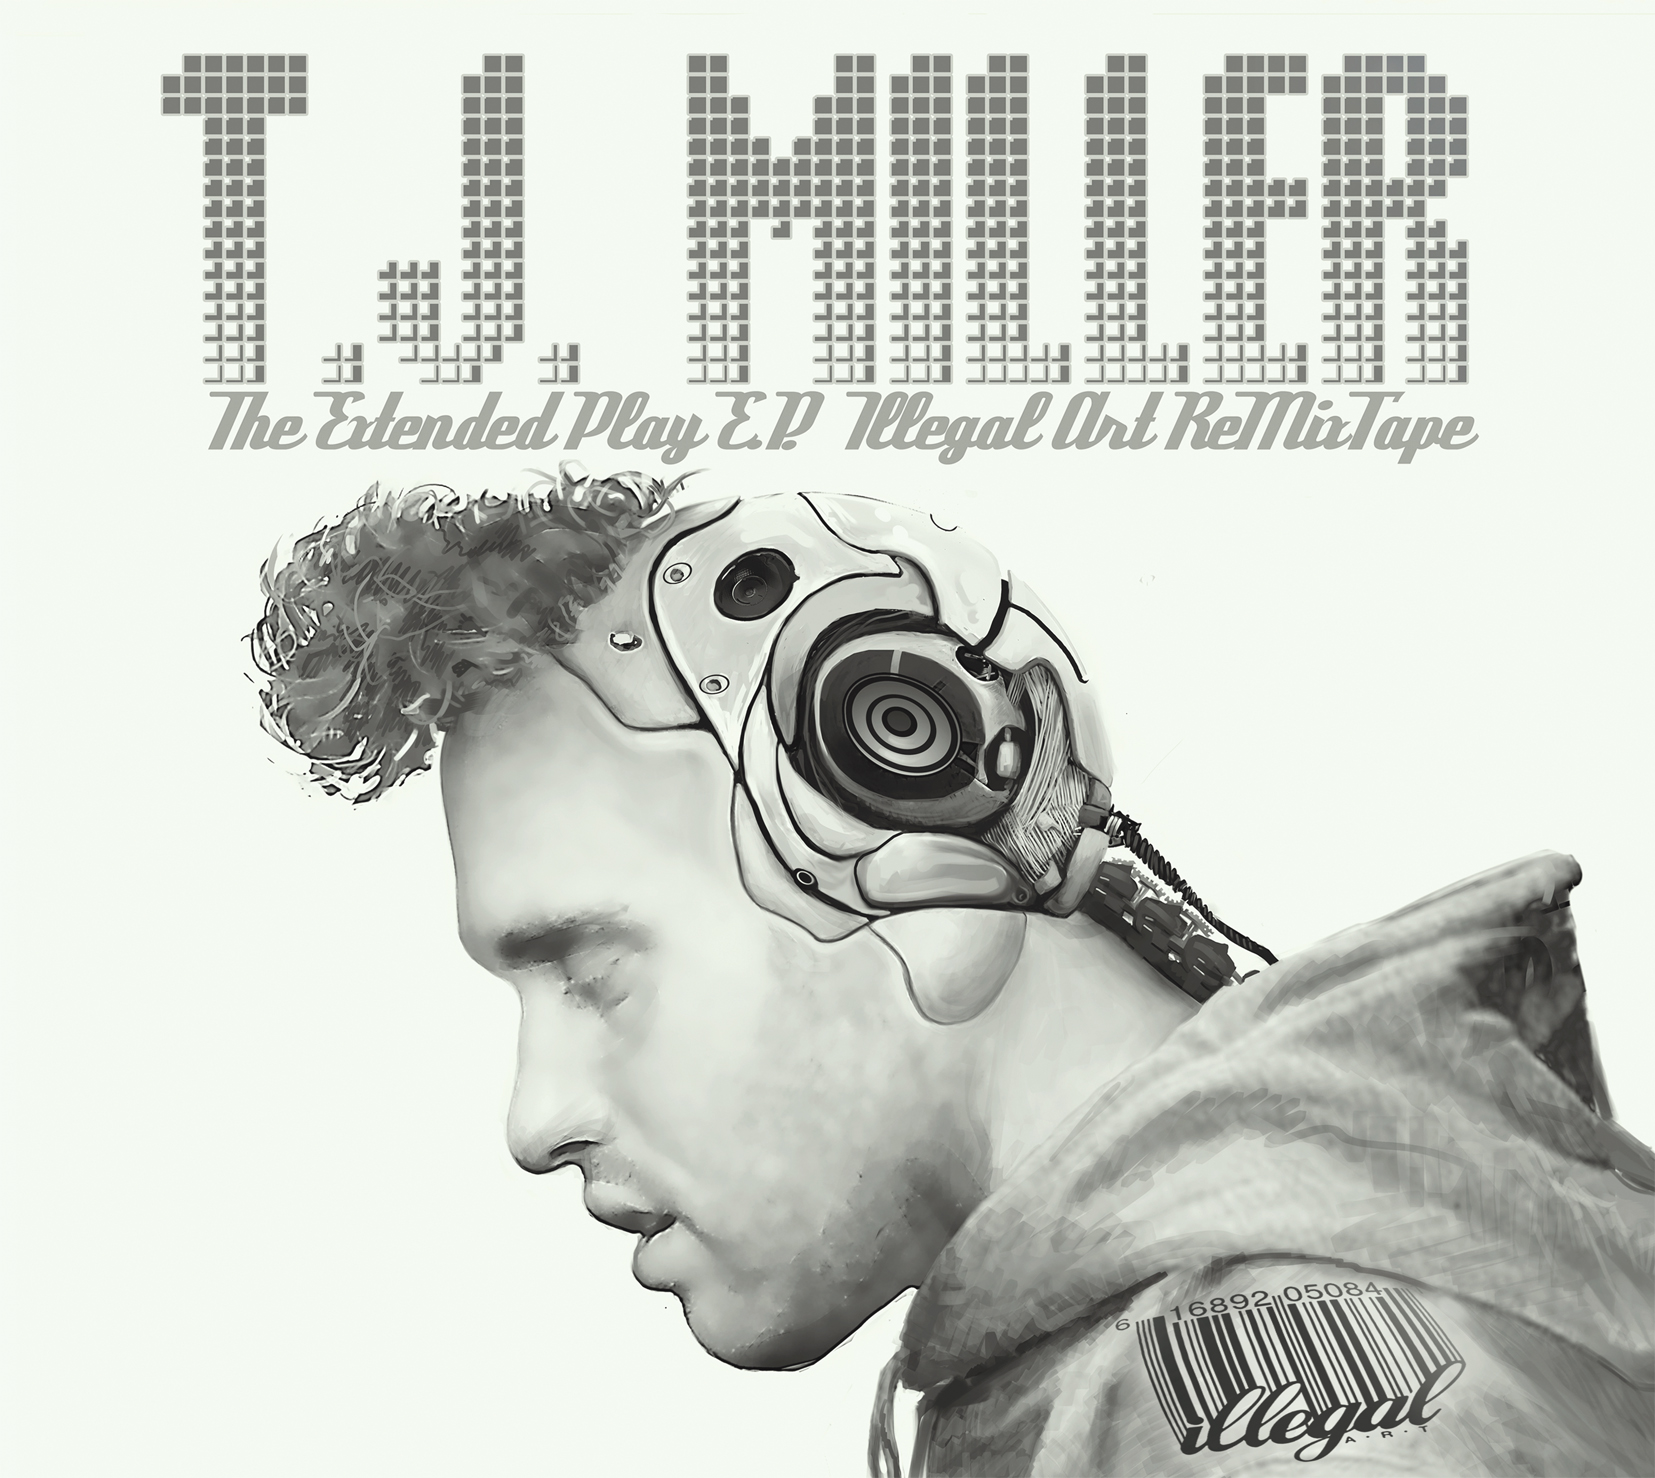 tj miller cover large Stream: T.J. Miller   The Extended Play E.P. Illegal Art ReMixTape (CoS Premiere)